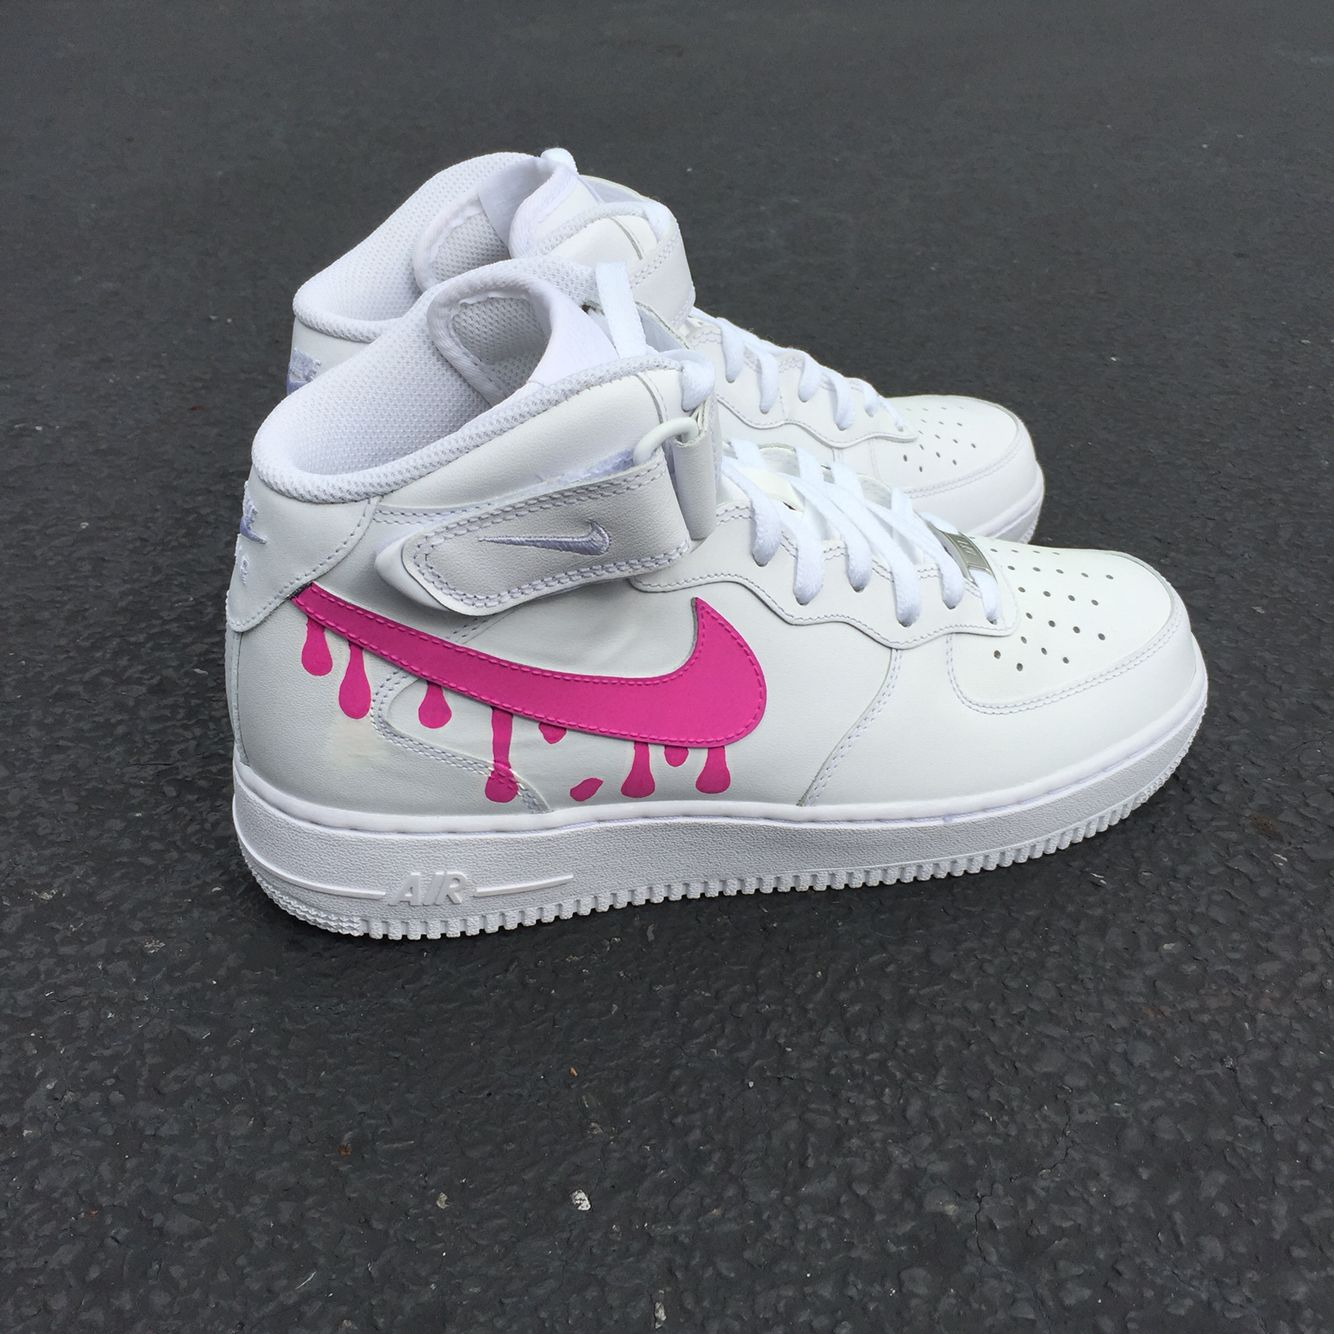 9e1ff45a656 NIKE AIR FORCE 1 pink drip